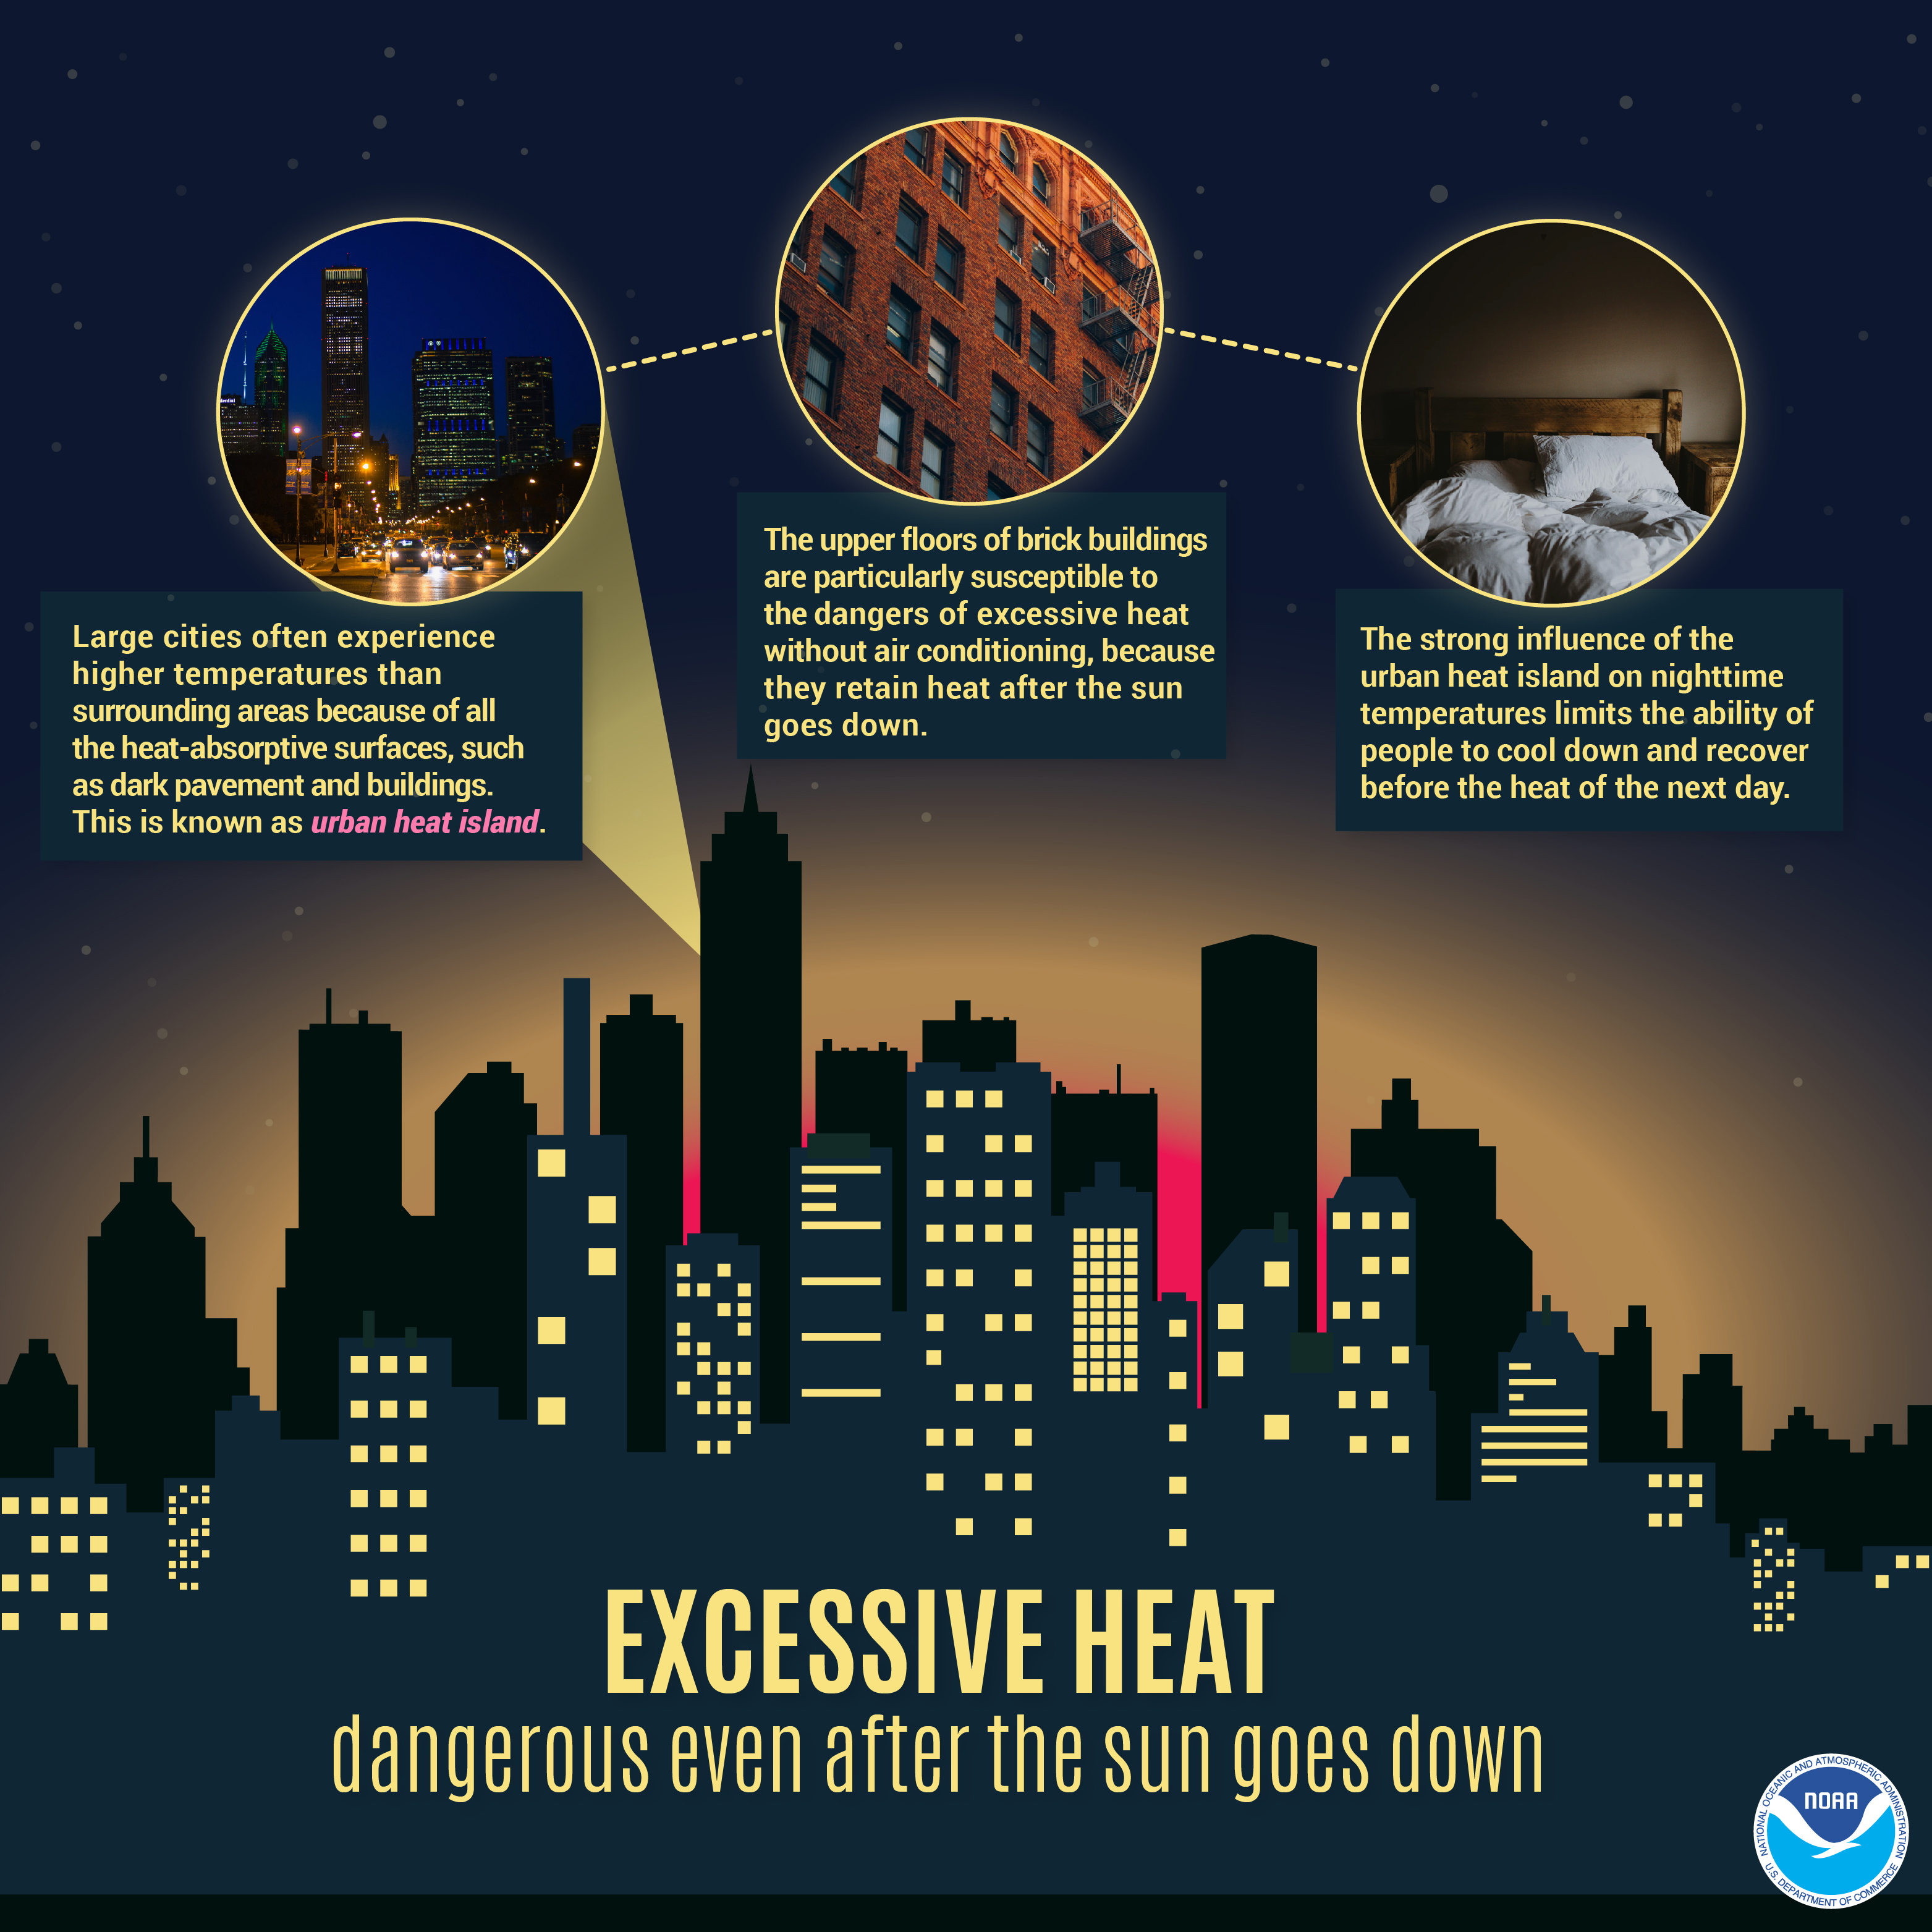 Excessive Heat: dangerous even after the sun goes down. Large cities often experience higher temperatures than surrounding areas because of all the heat-absorptive surfaces, such as dark pavement and buildings. This is known as an urban heat island. The upper floors of brick buildings are particularly susceptible to the dangers of excessive heat without air conditioning, because they retain heat after the sun goes down. The strong influence of the urban heat island on nighttime temperatures limits the ability of people to cool down and recover the heat of the next day.